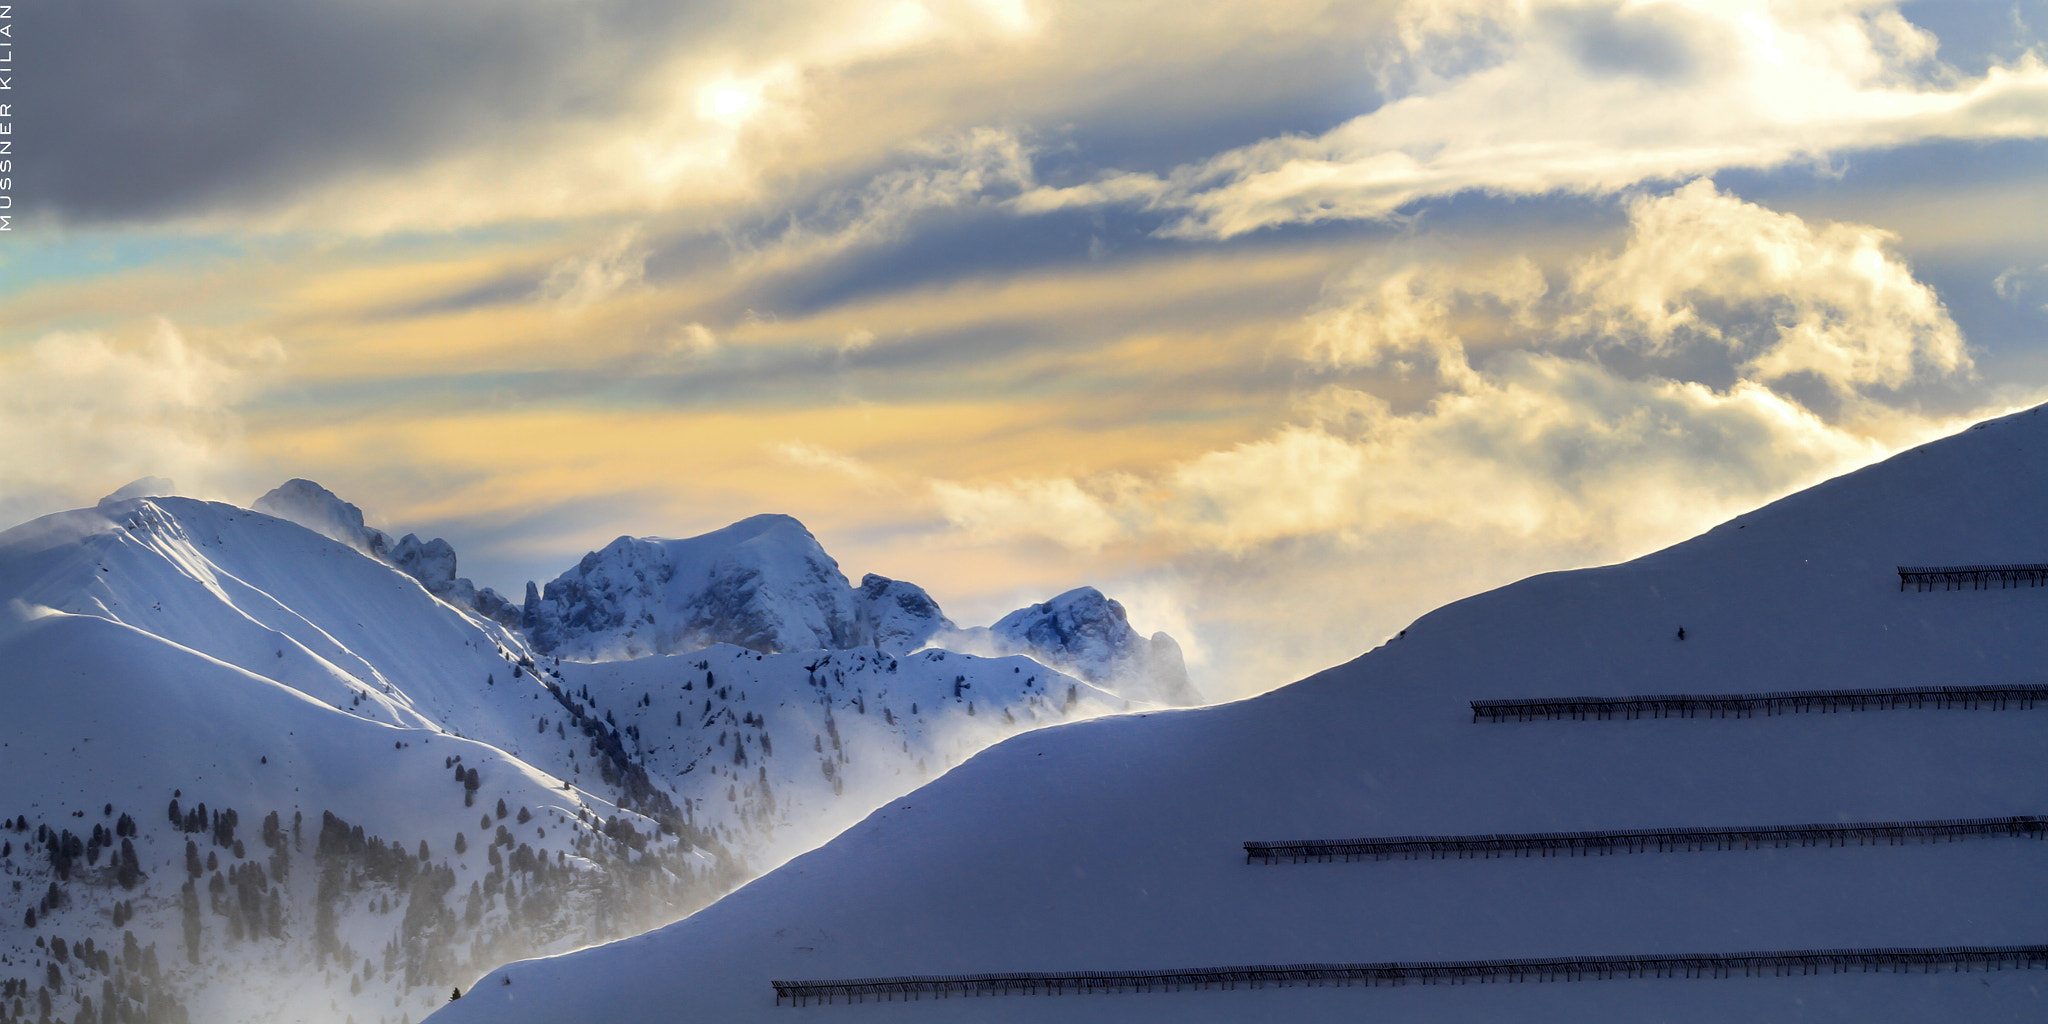 Photograph winter winds by Kilian Mussner on 500px